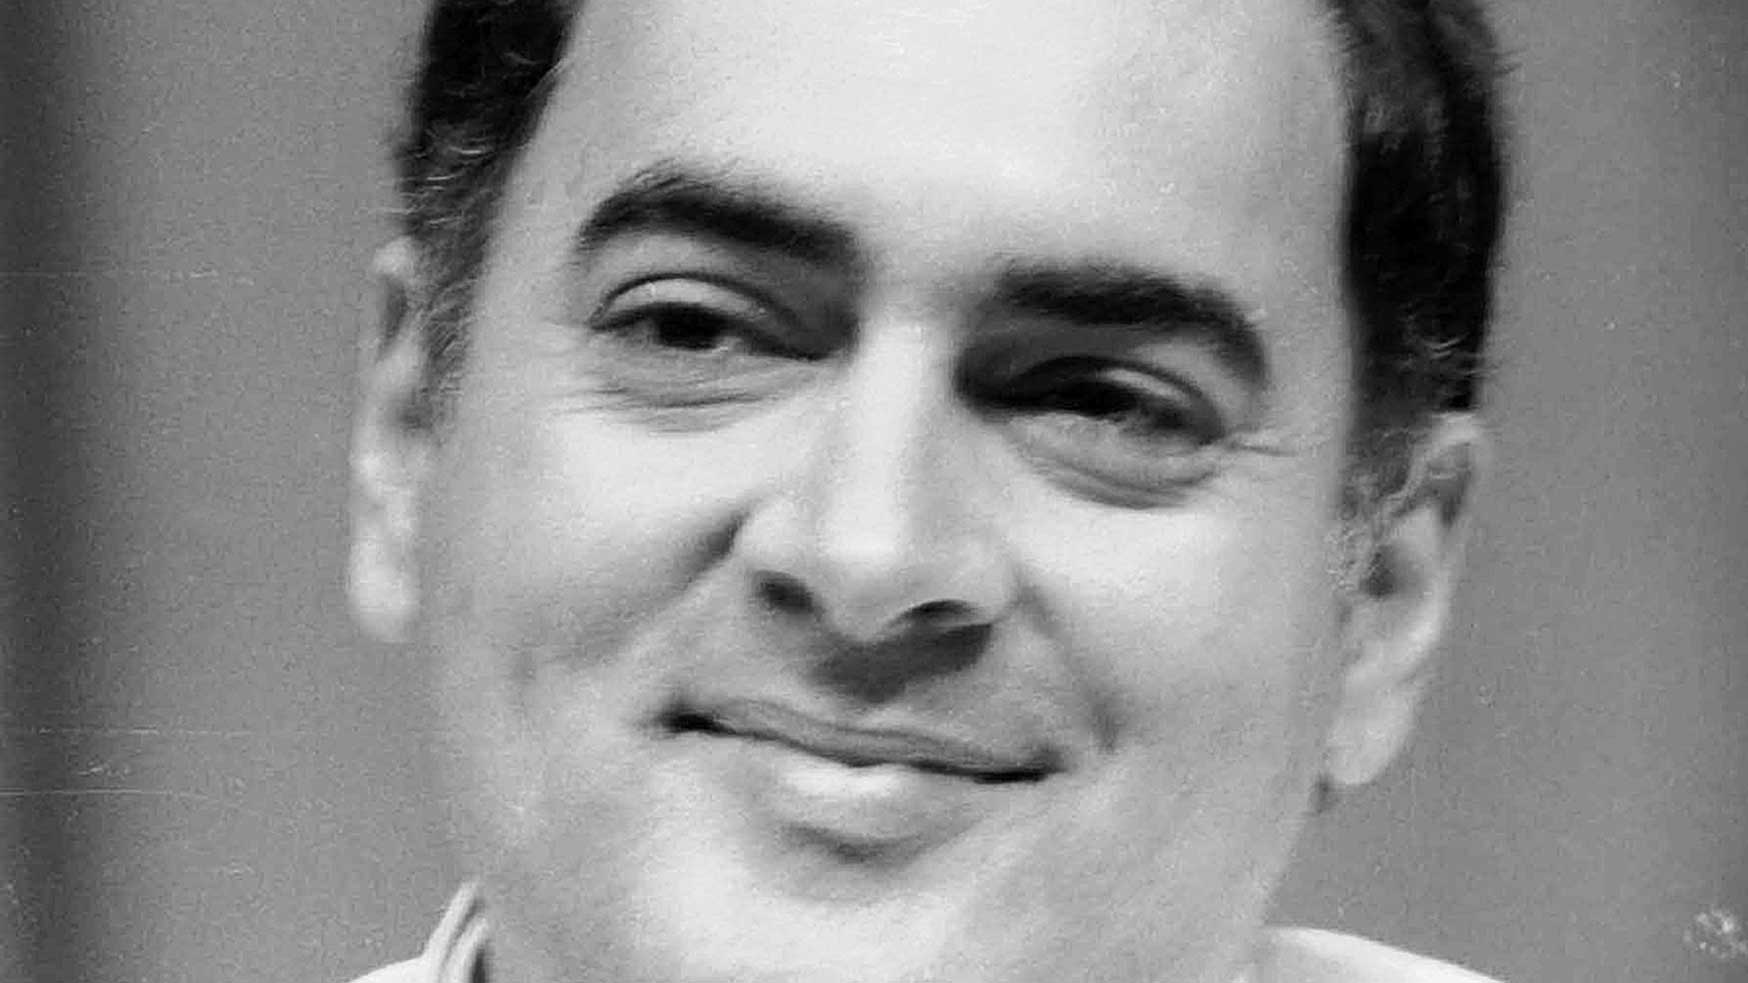 Rajiv Gandhi in 1985 when he was Prime Minister.